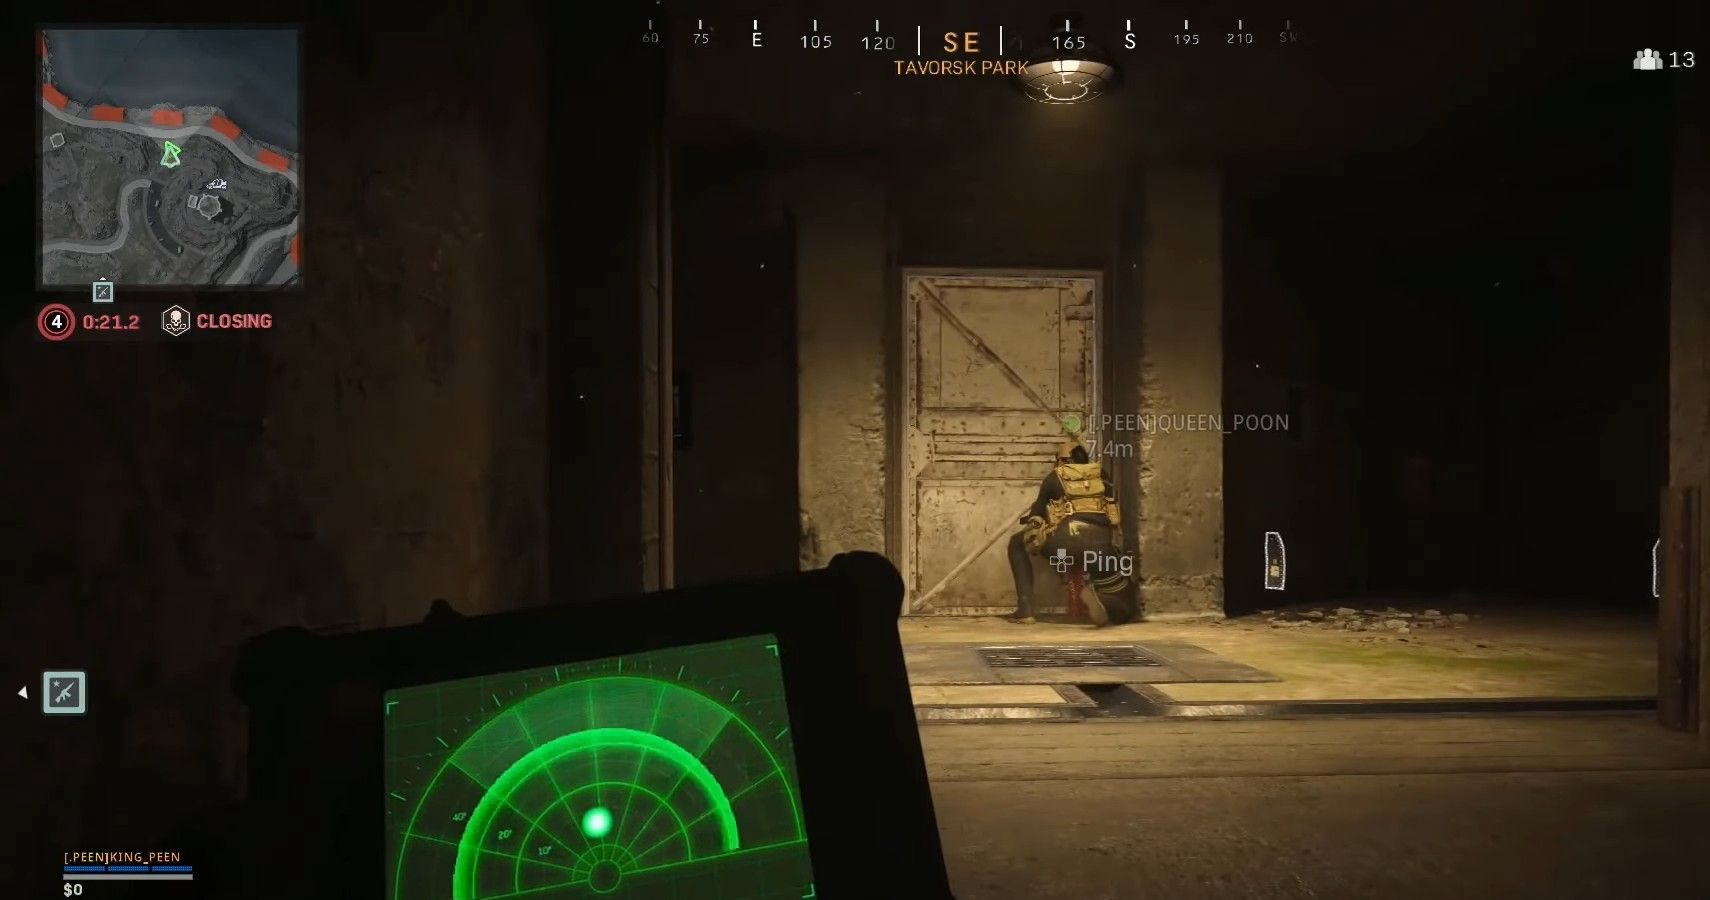 How To Lock Doors In Call Of Duty: Warzone